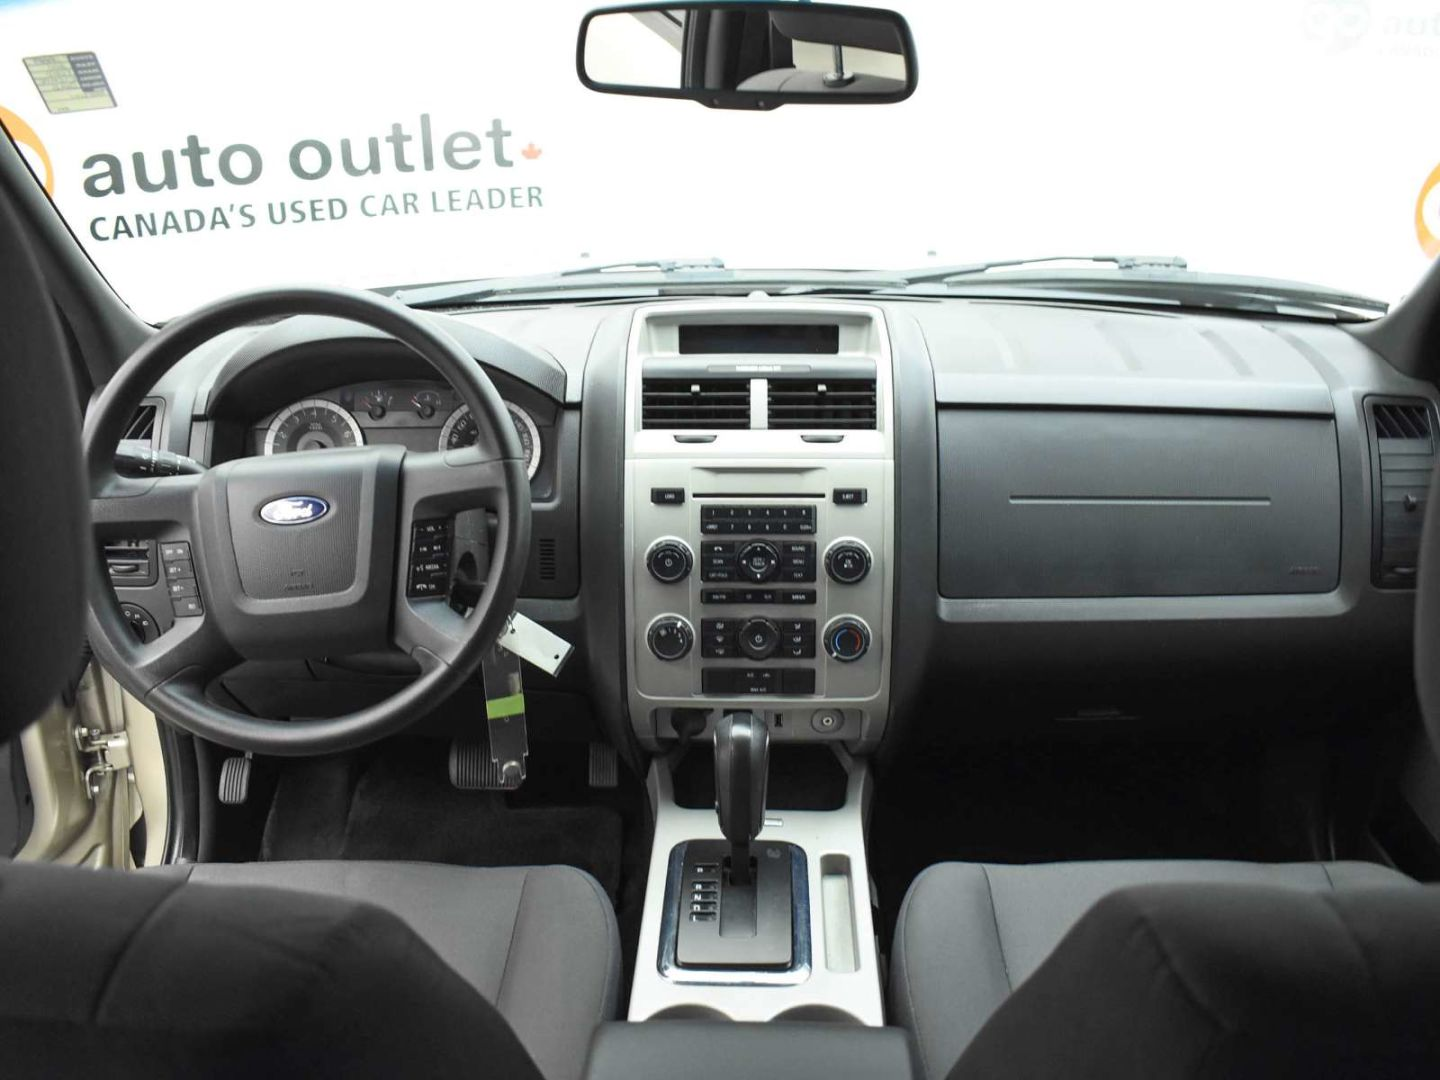 2011 Ford Escape XLT for sale in Leduc, Alberta